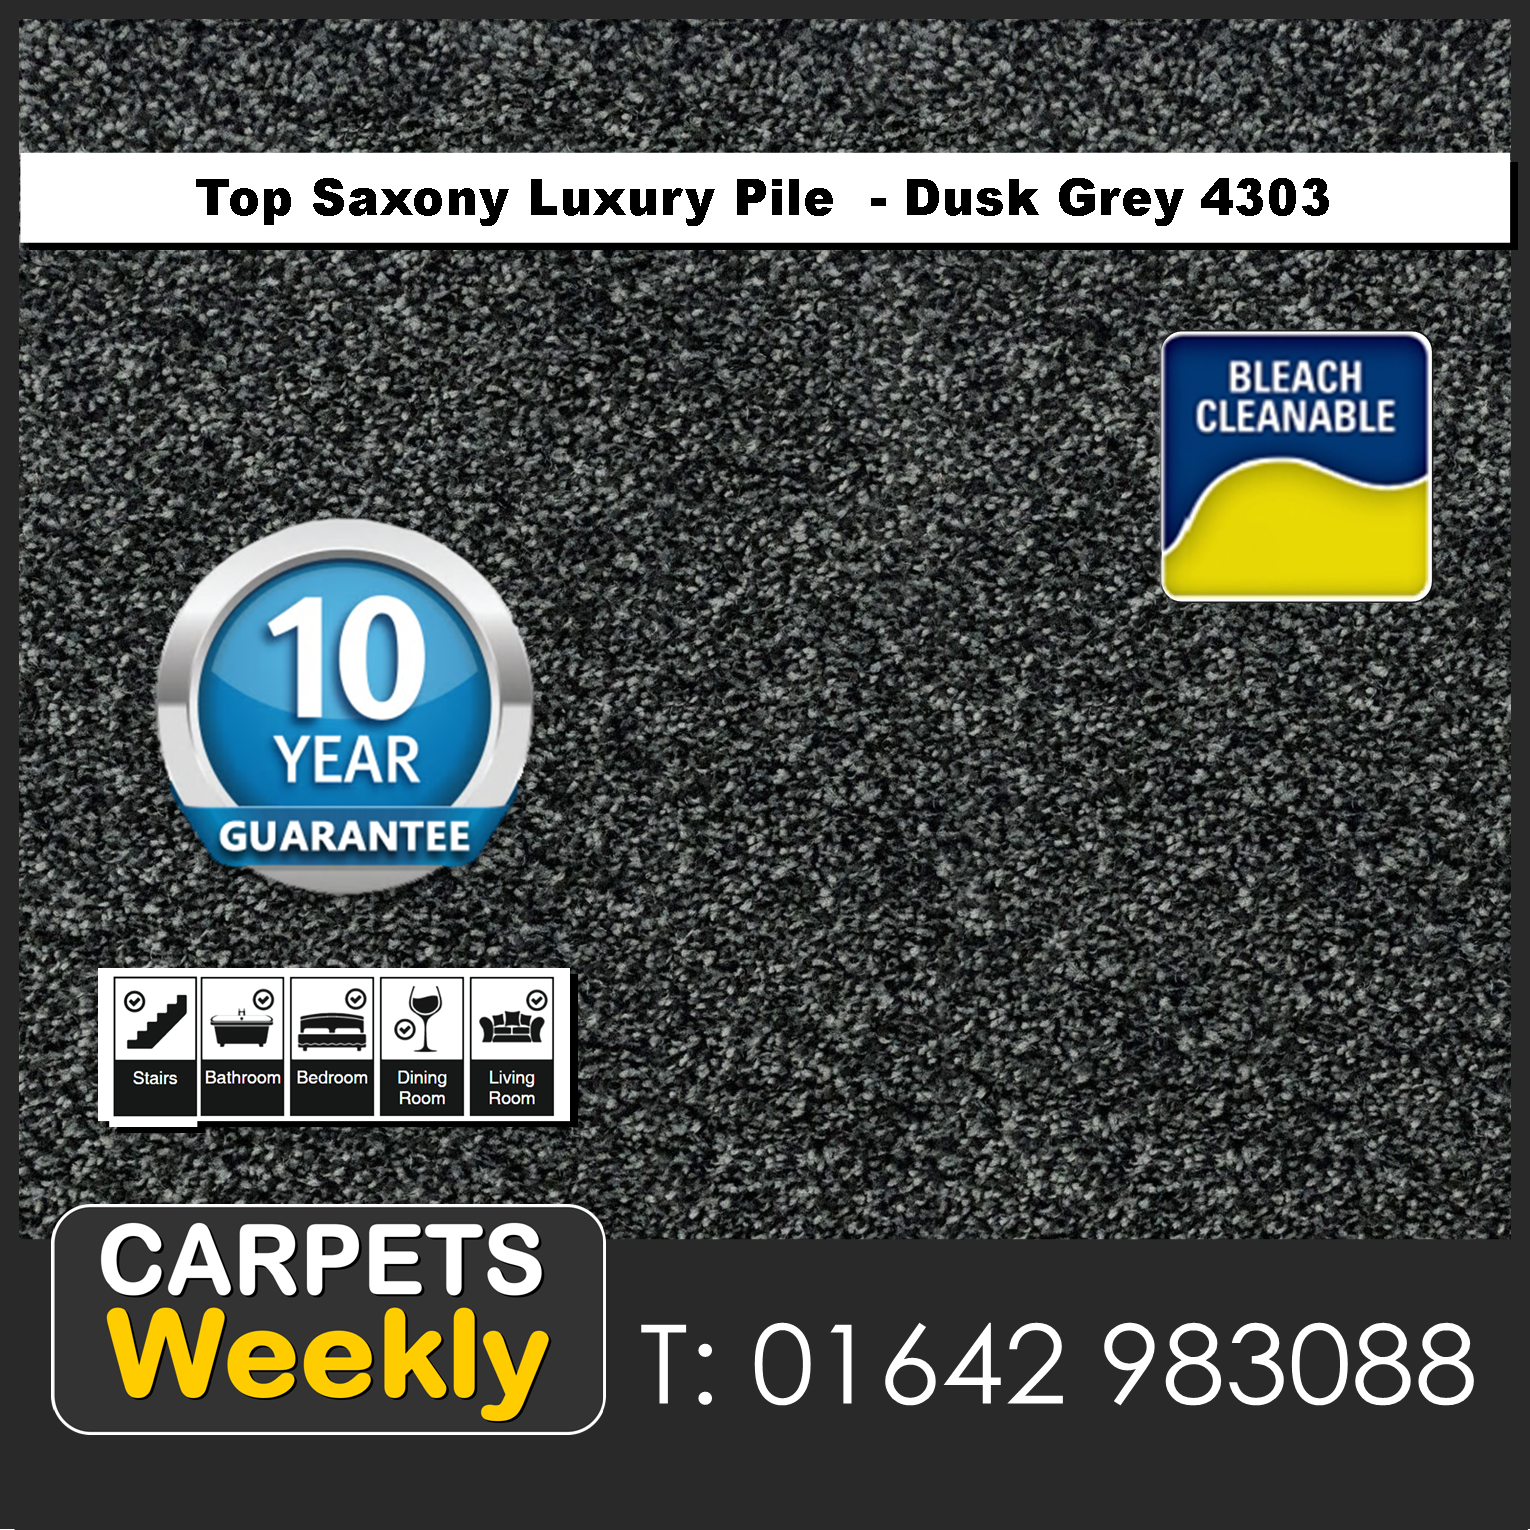 Top Saxony Dusk Grey - 4302 Carpet. Carpets Weekly